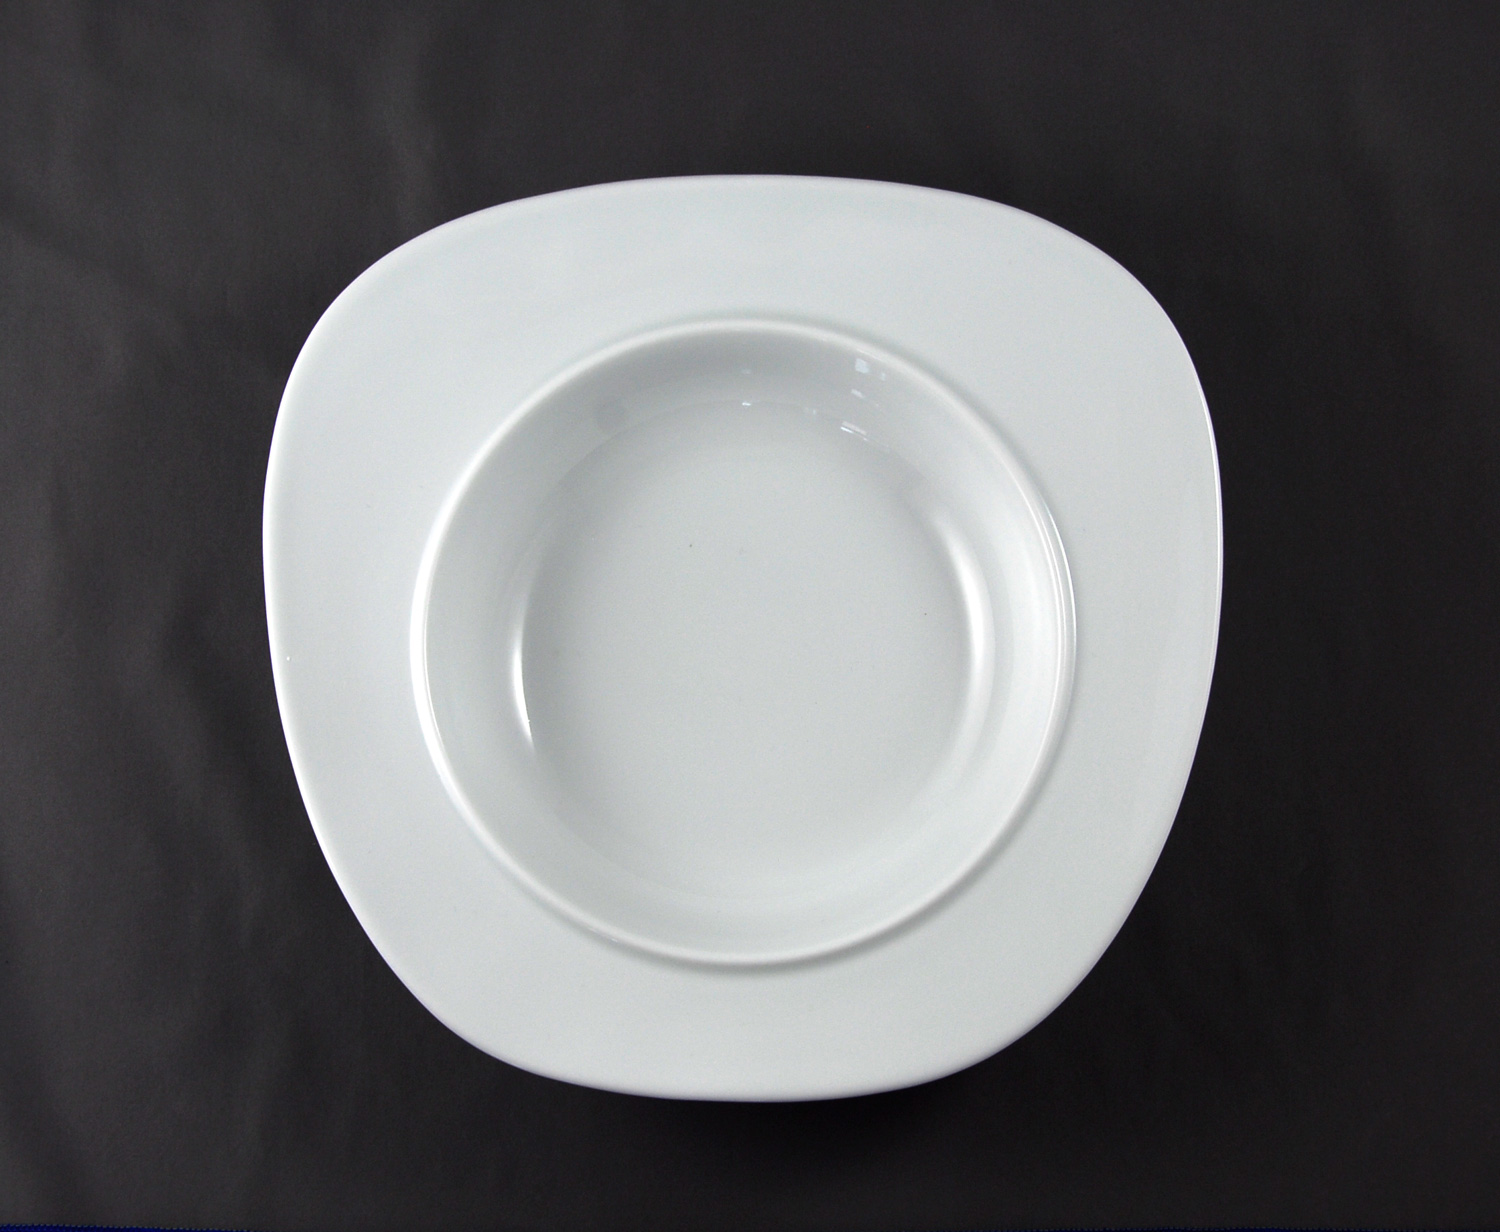 Bowl-plate for soup viewed from top